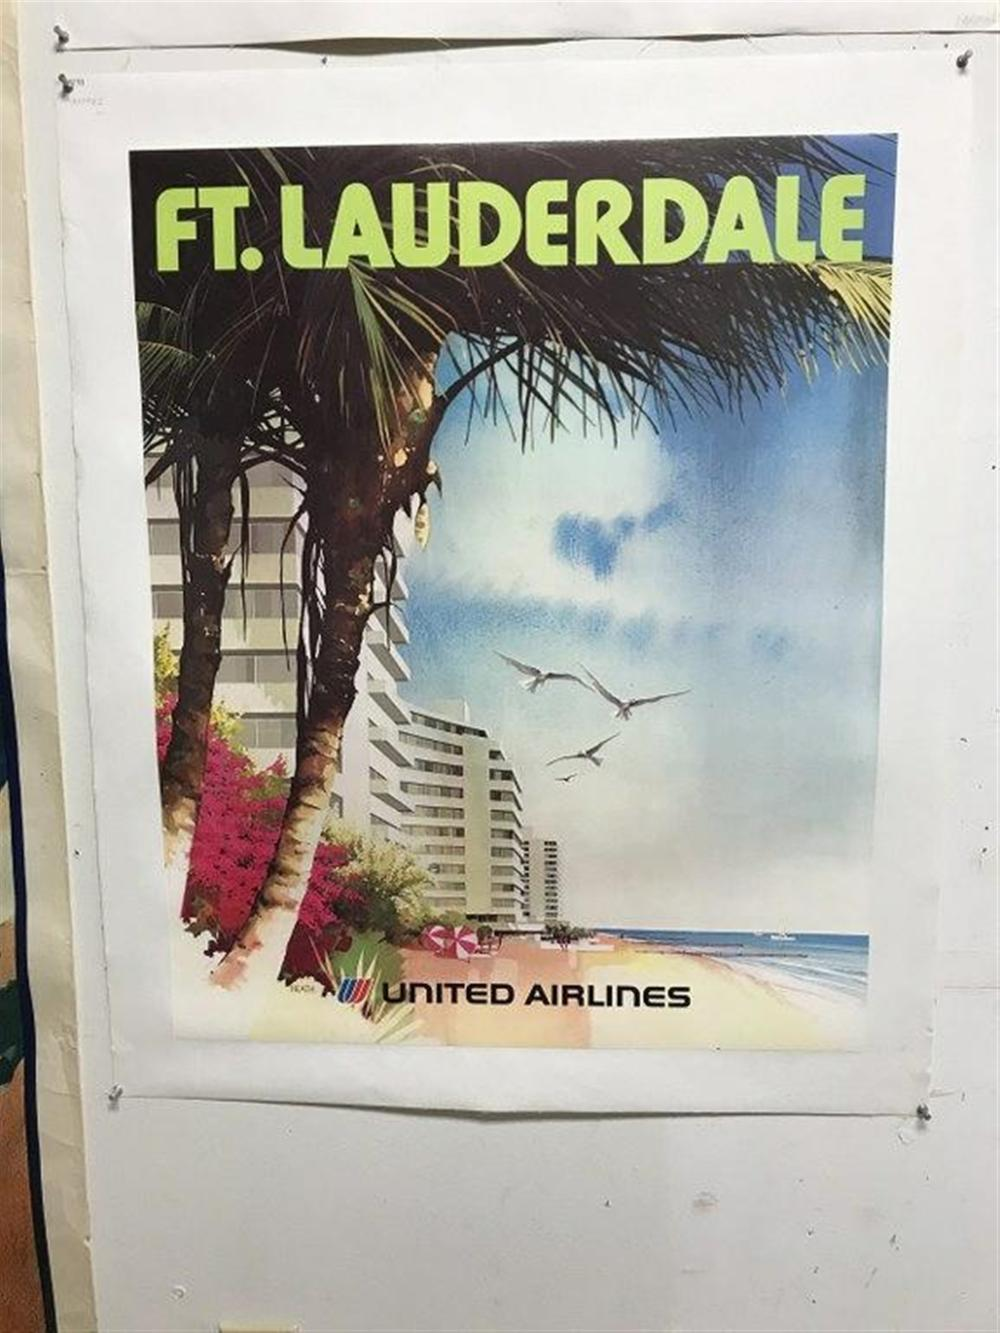 "POSTER- UNITED AIRLINES FT. LAUDERDALE, LINEN BACKED, MEASURES 28"" X 22 3/4"". ARTIST IS HEATH. CIRCA 1970?."